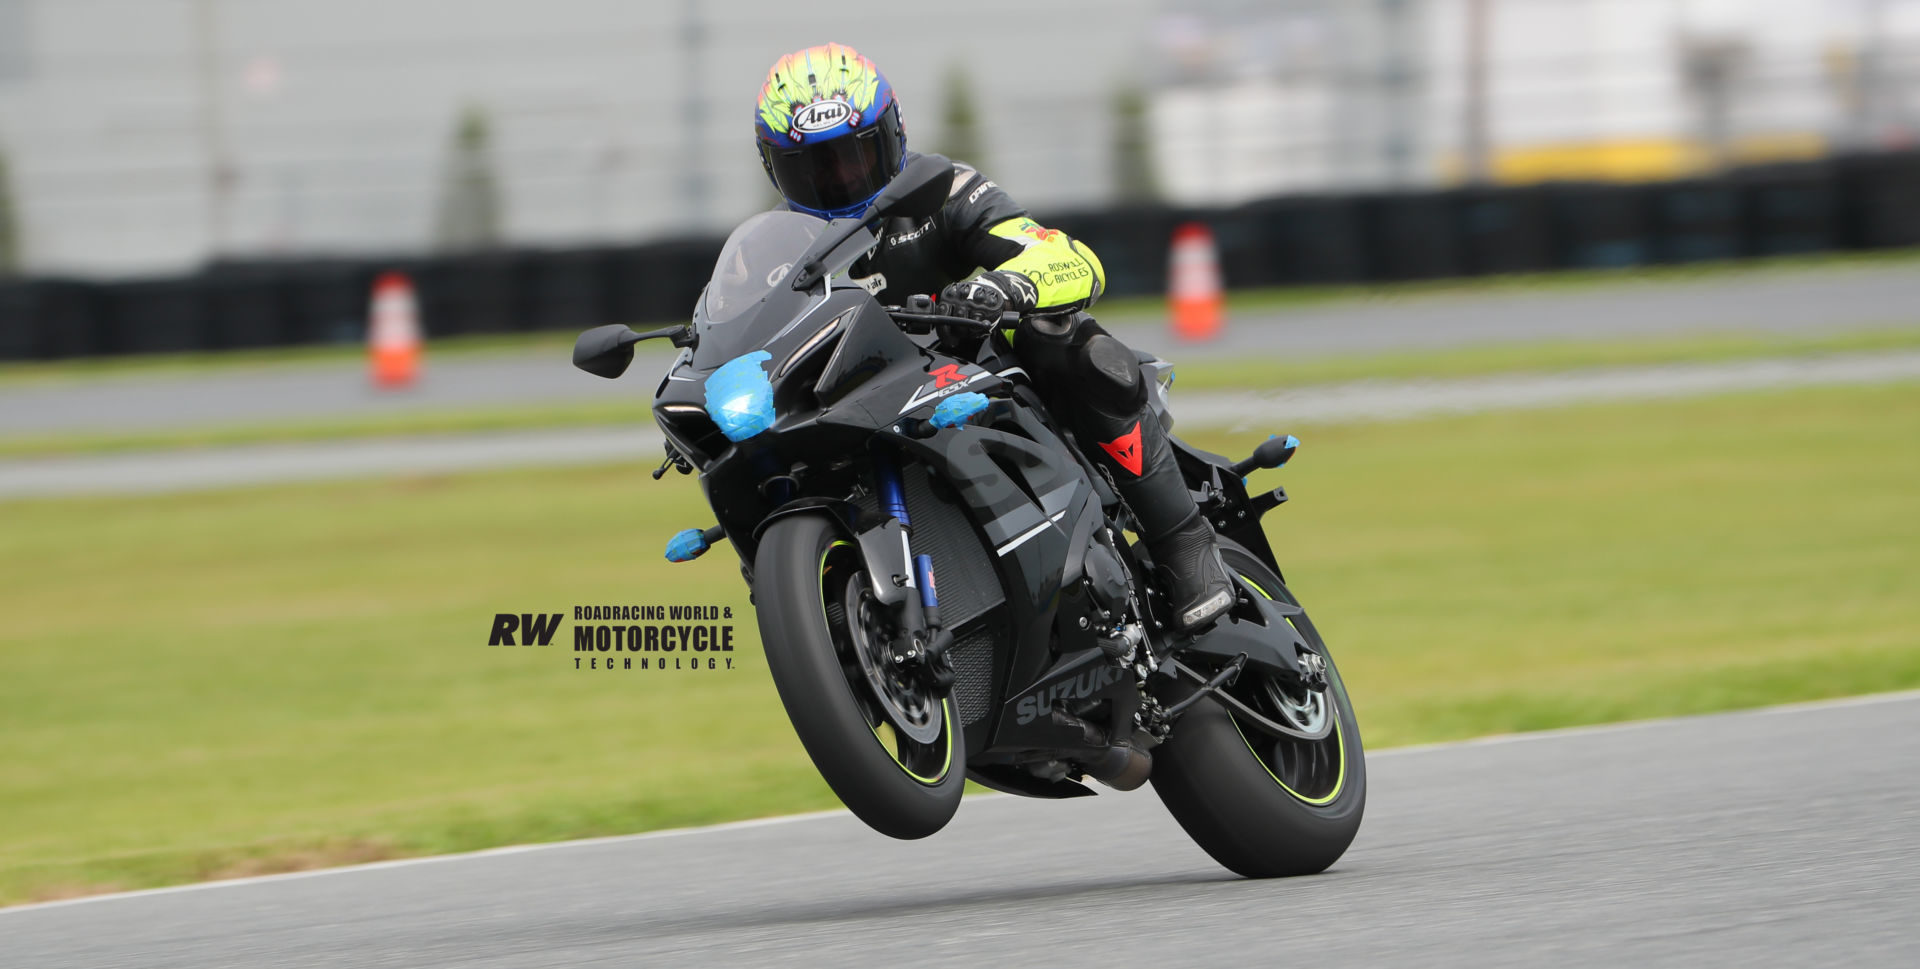 Five-time Daytona 200 winner Scott Russell riding a Suzuki GSX-R1000R during the Team Hammer Advanced Riding School October 18 at Daytona International Speedway. Photo by Brian J. Nelson.